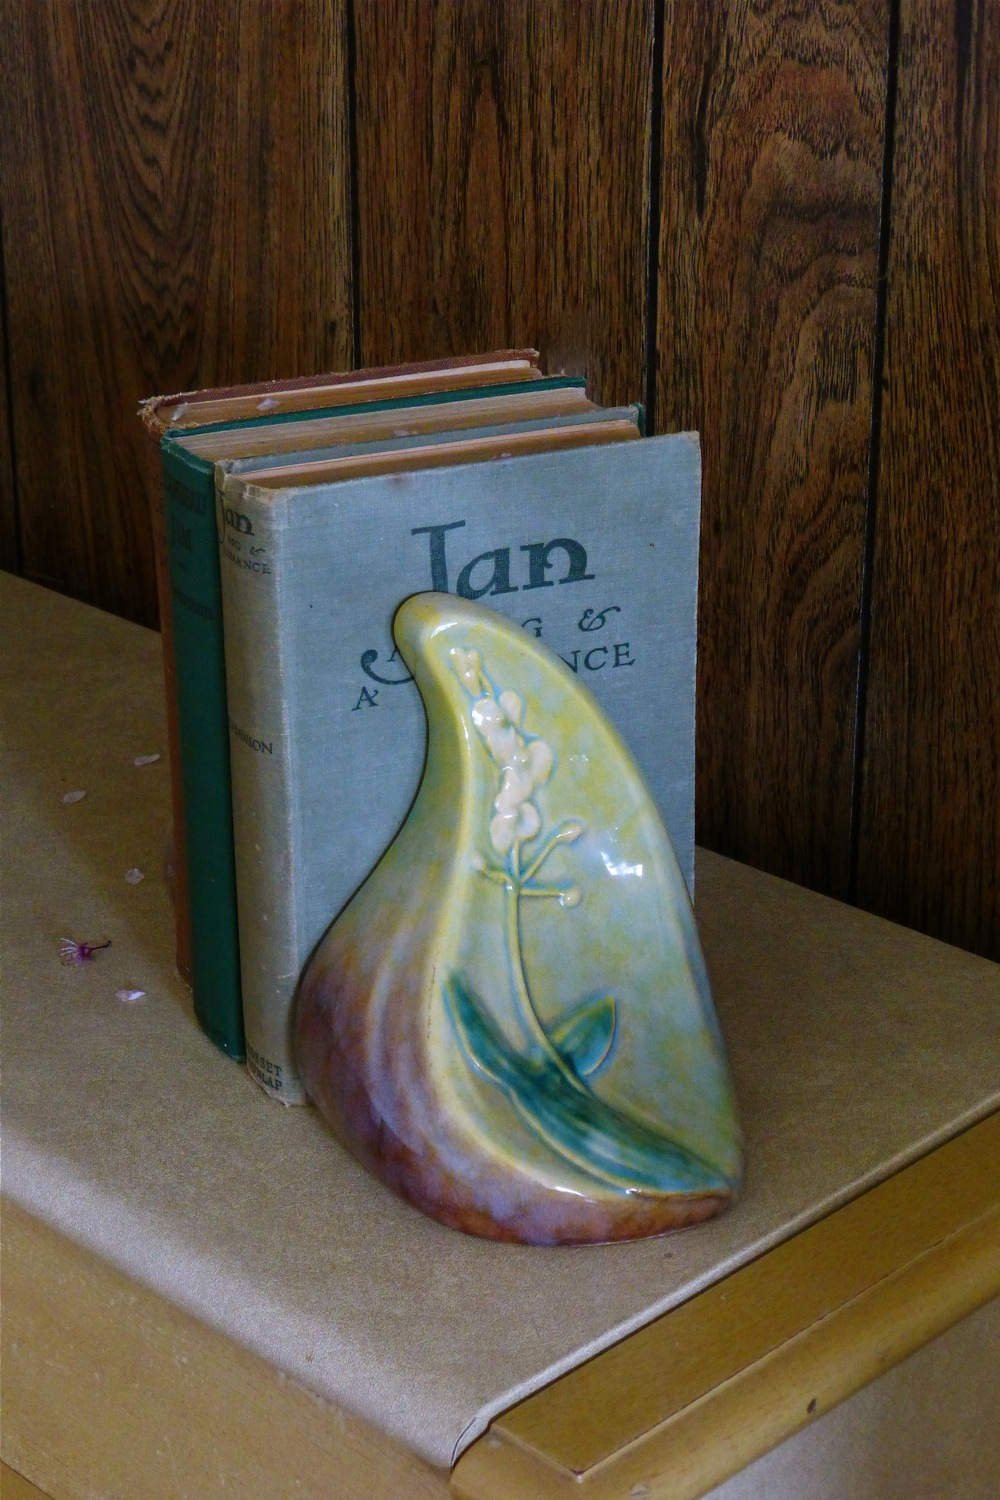 vintage hard back books, Roseville Pottery, Roseville Pottery ceramic book-ends, vintage books, ceramic book-ends